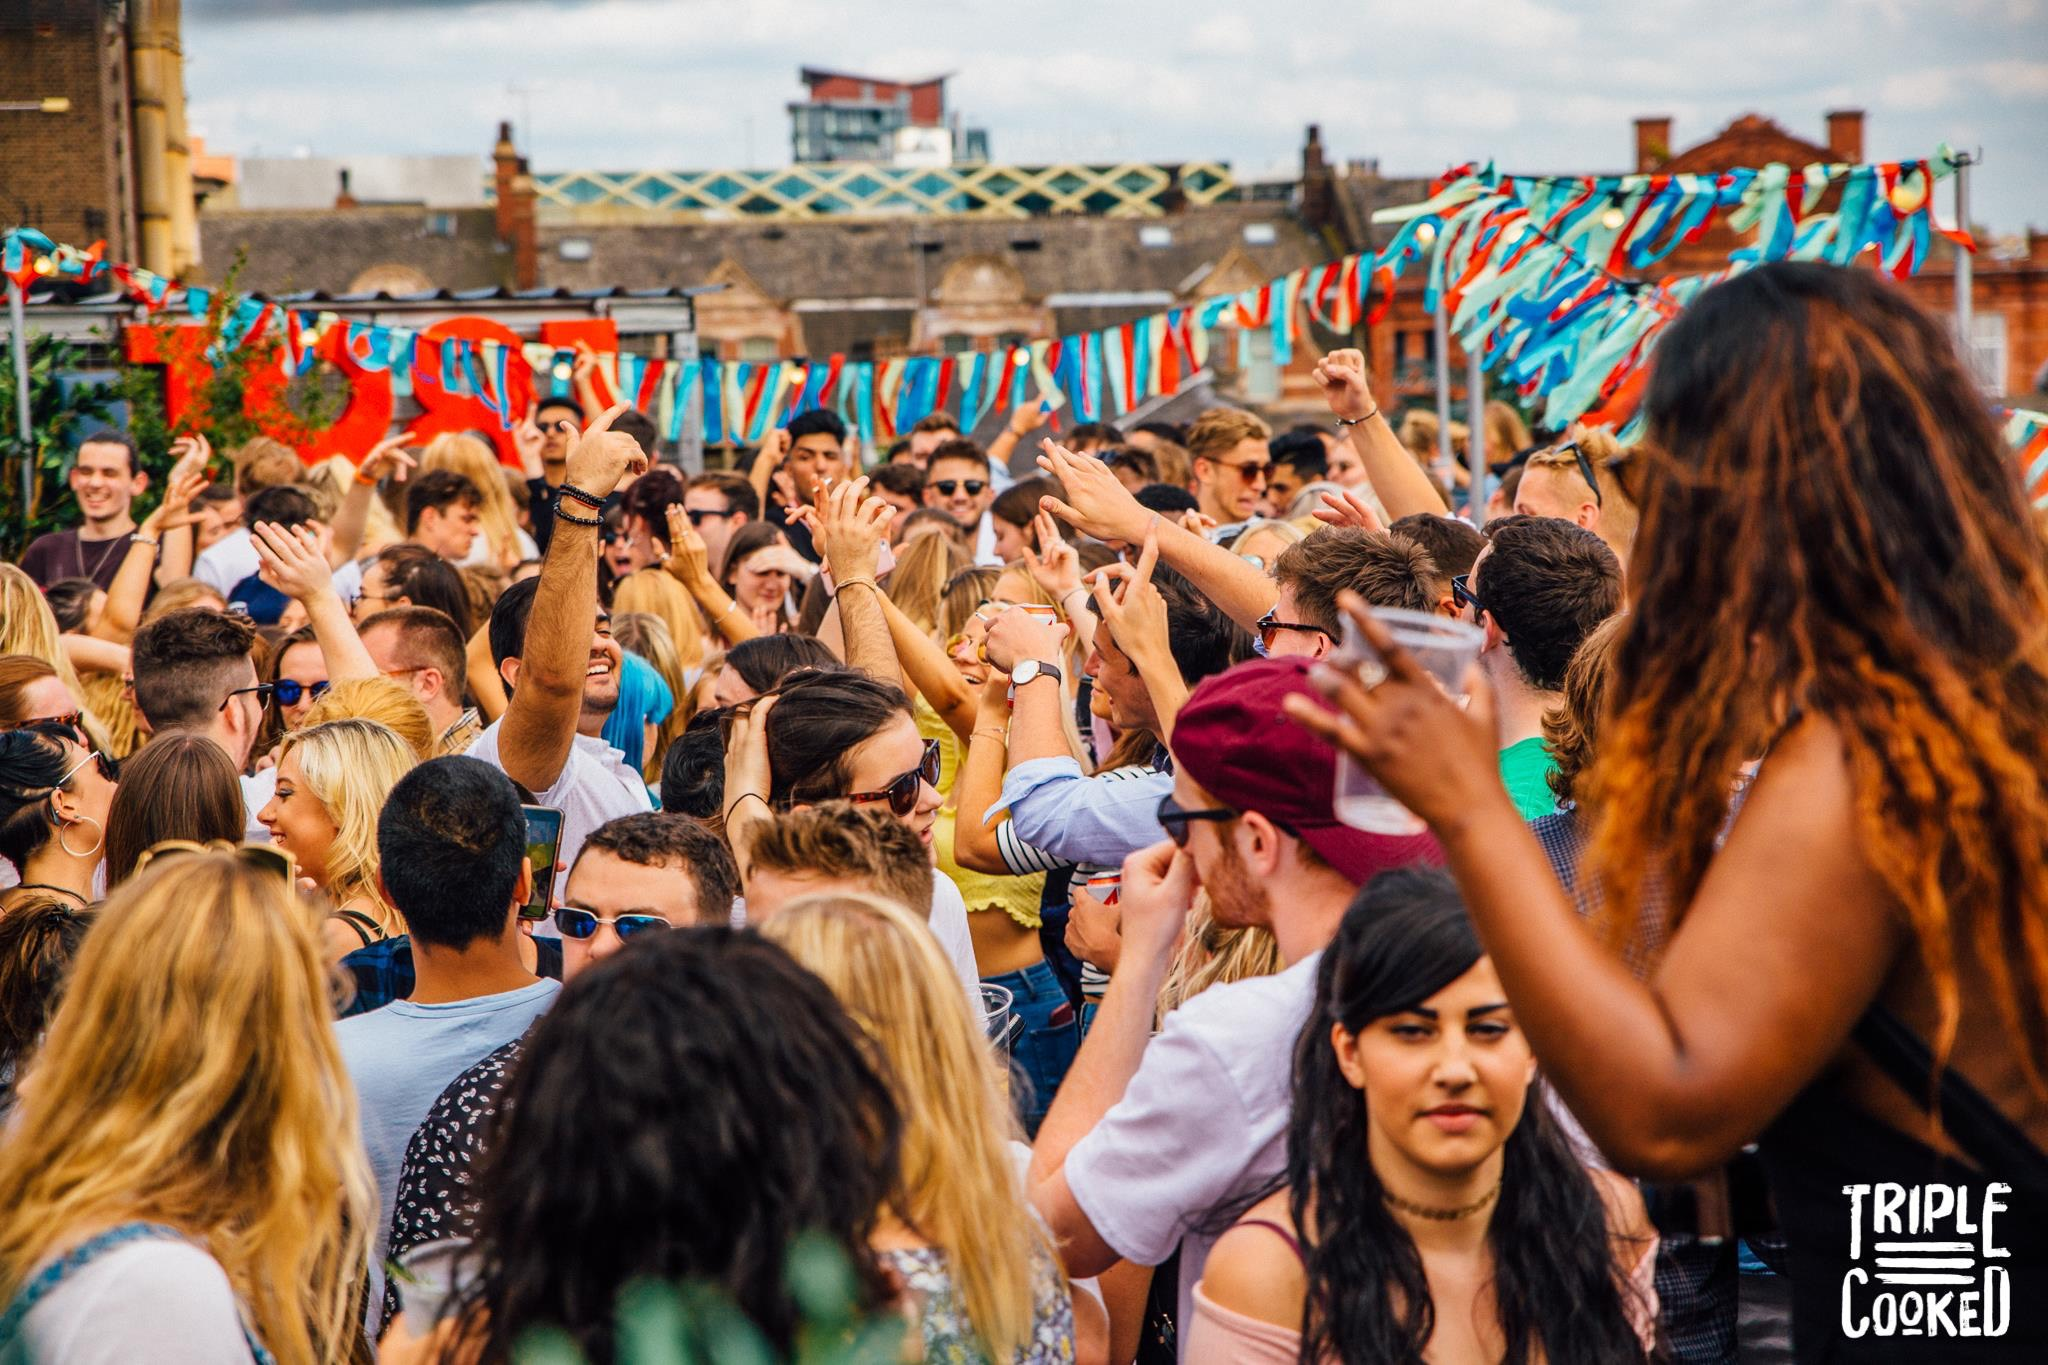 Triple Cooked: Leeds – Rooftop party